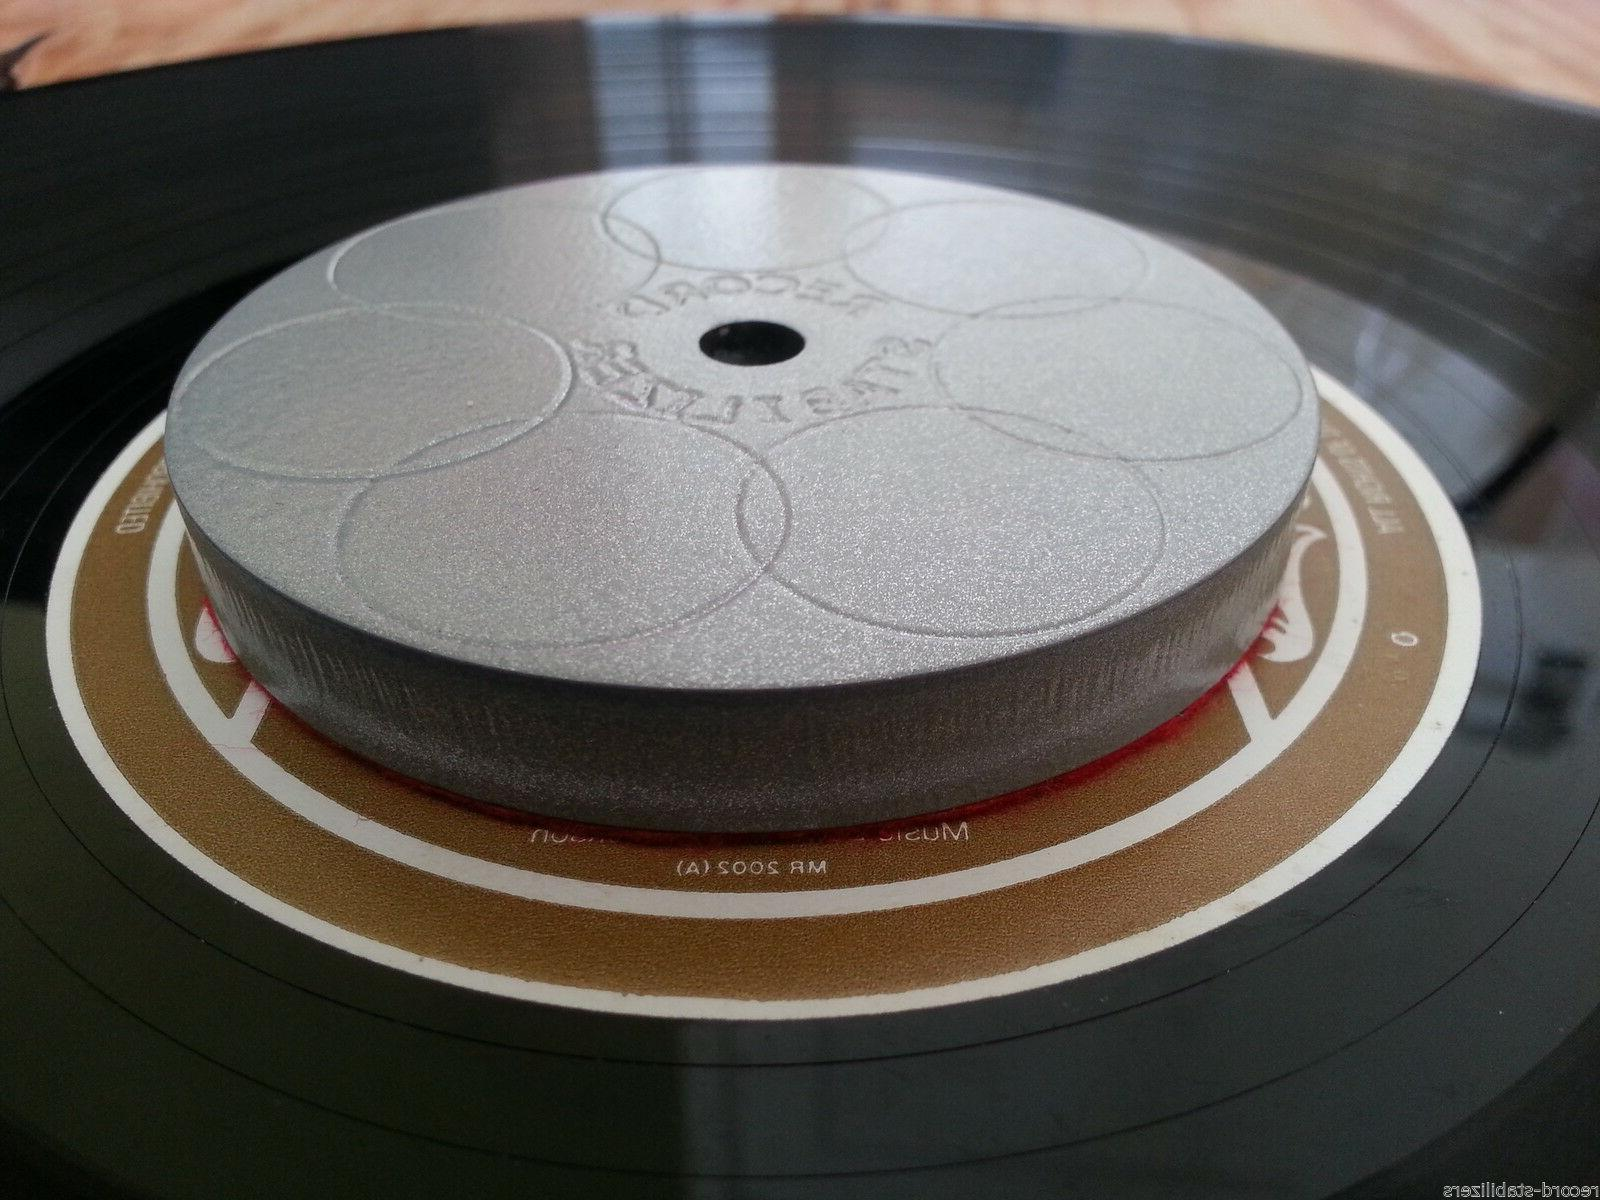 carbon steel record turntable stabilizer weight approx